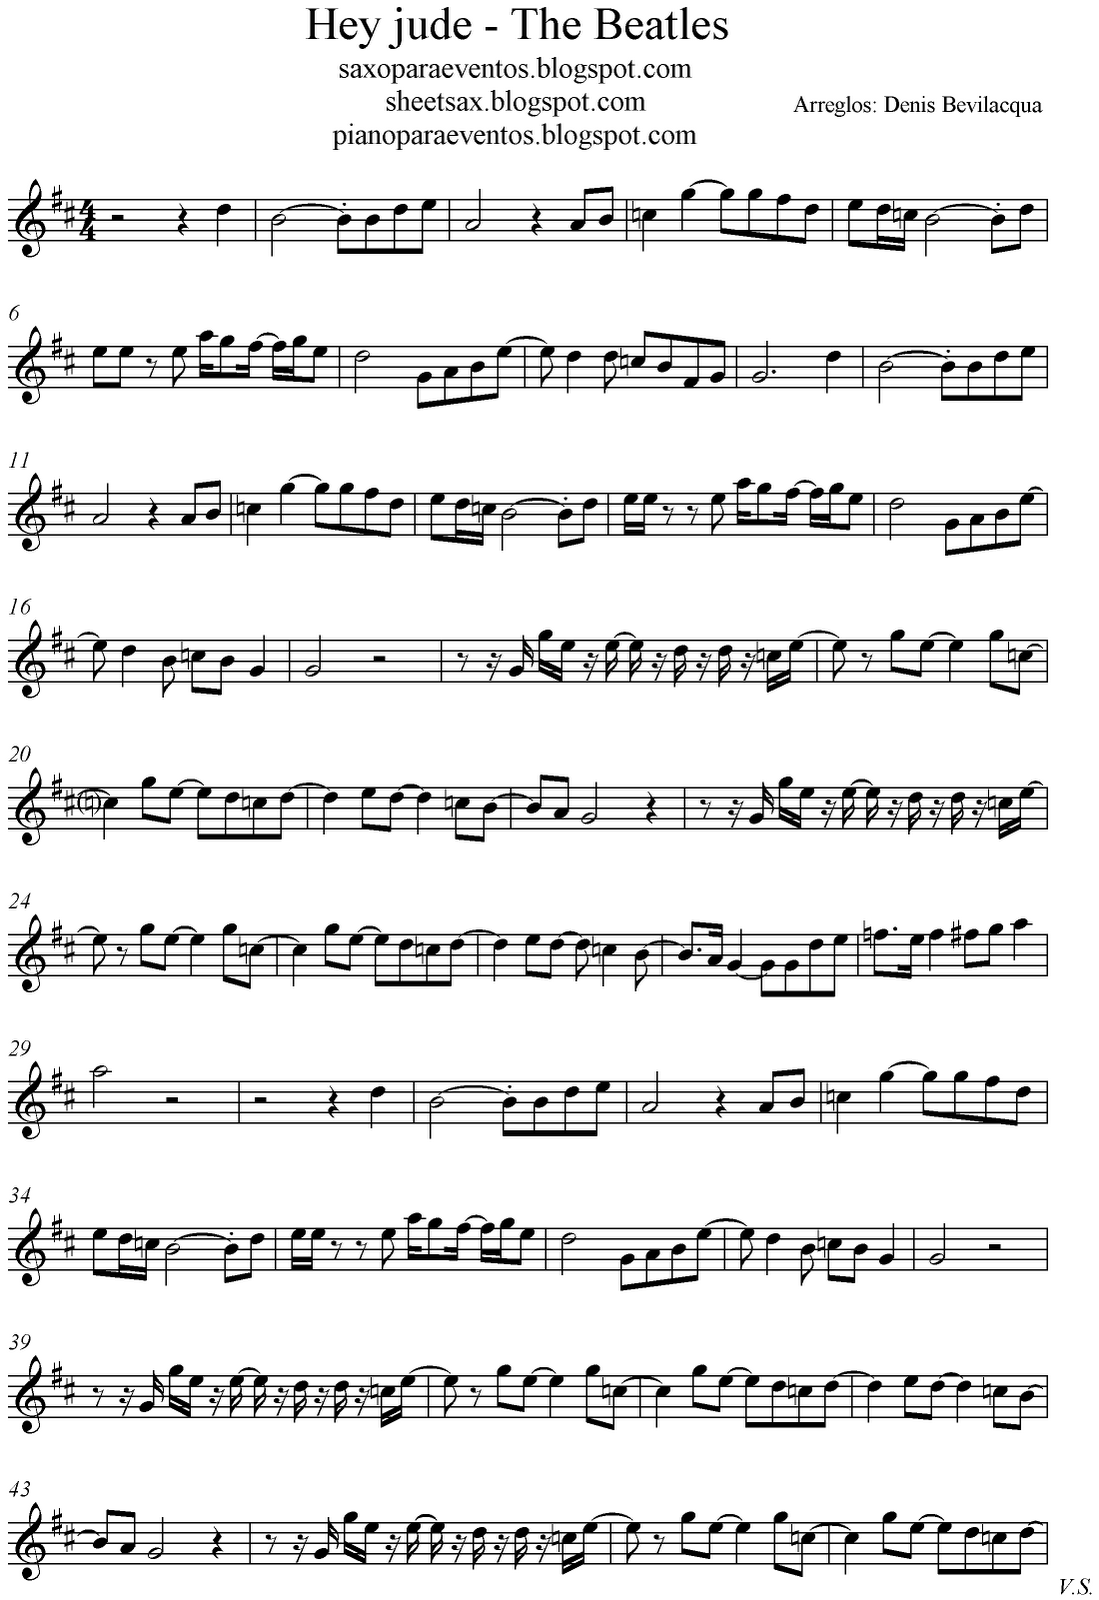 hey jude   the beatles score and track sheet music free